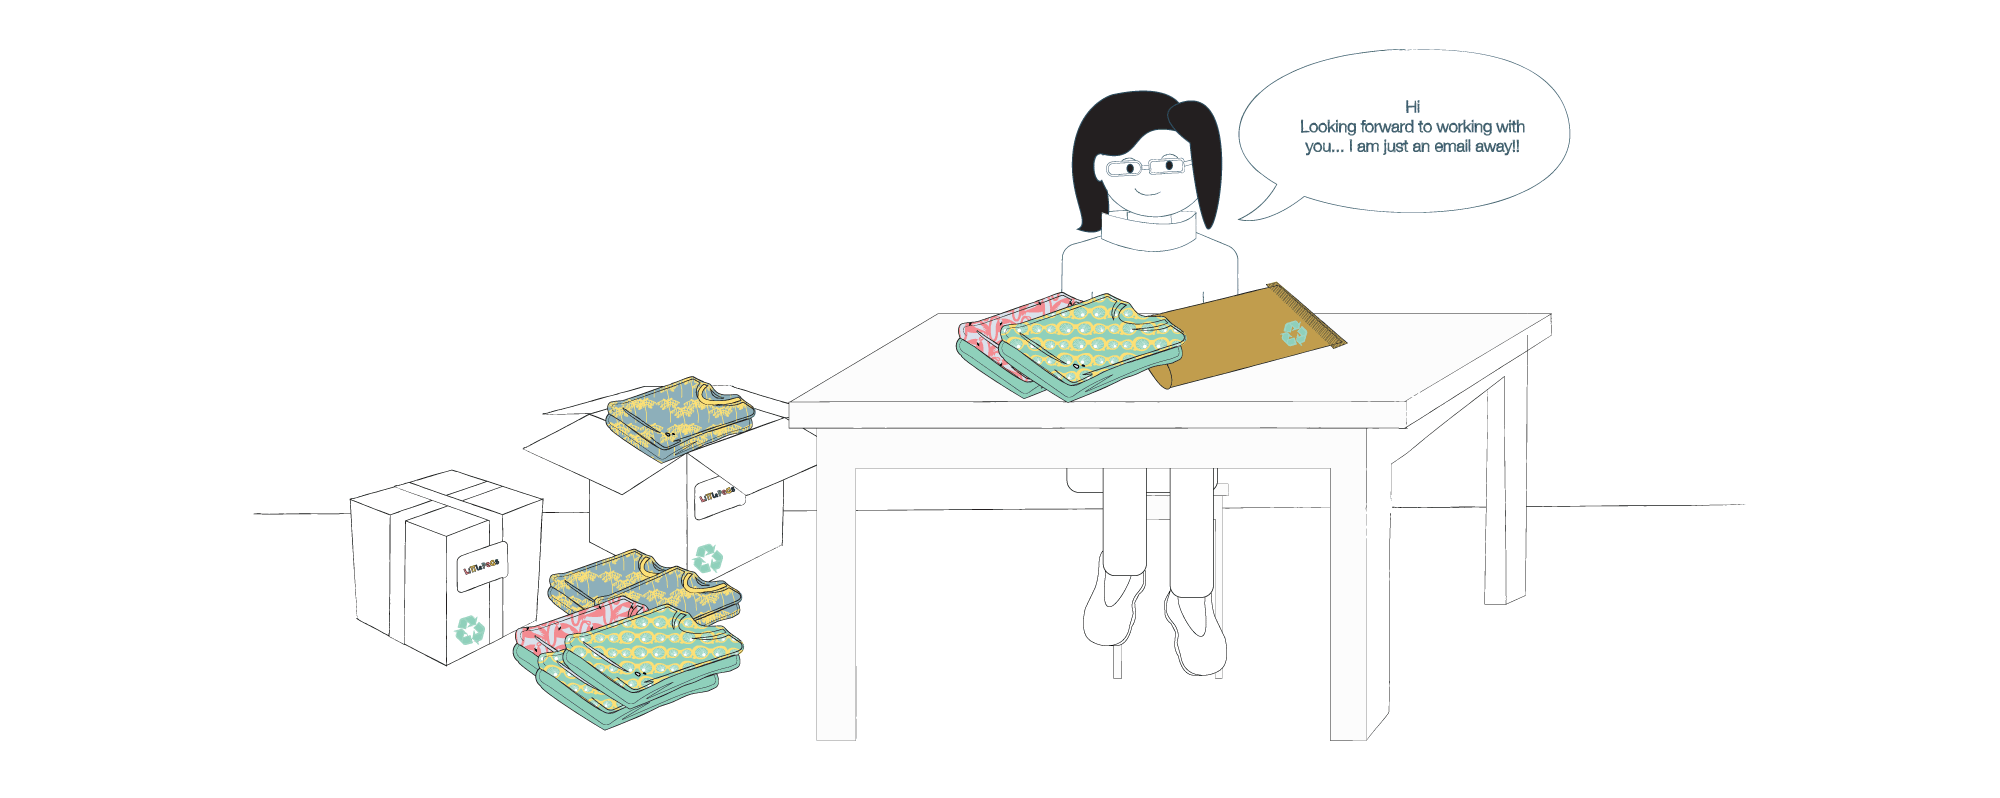 Children's clothing brand | Little Pegs | Illustration of jenny the owner packing up boxes of Little Pegs clothing ready for wholesale shipping